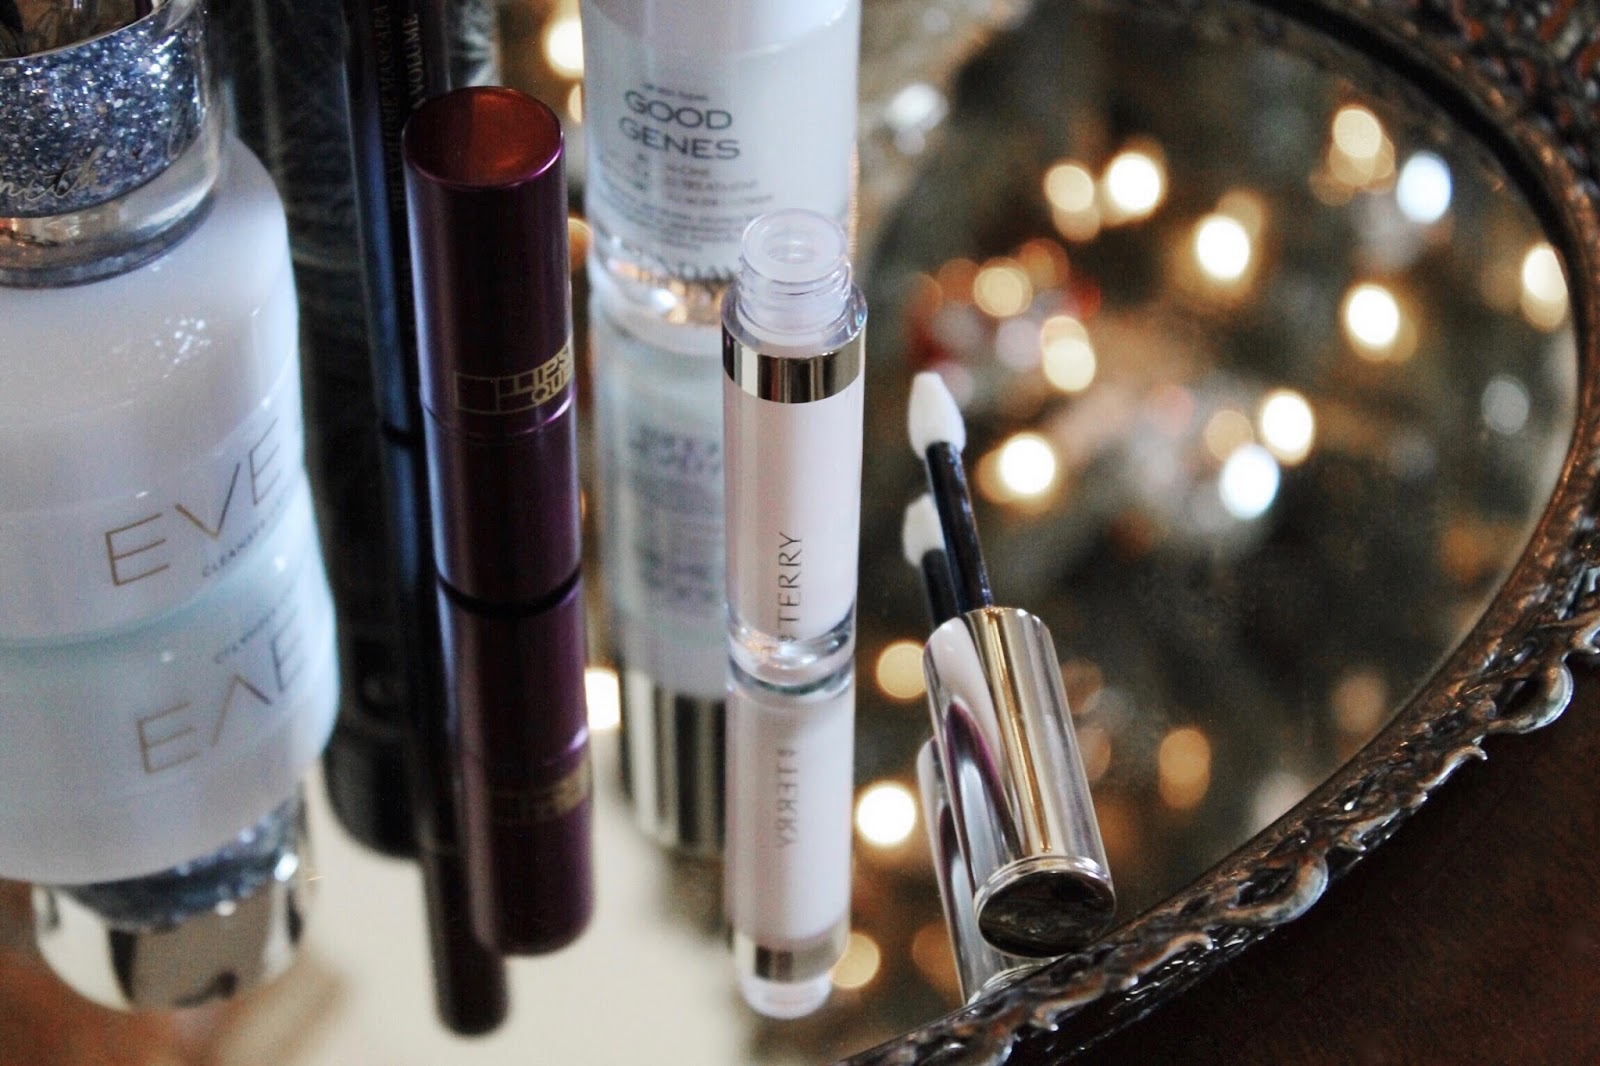 Space NK Holiday Heroes Silver Edition Collection